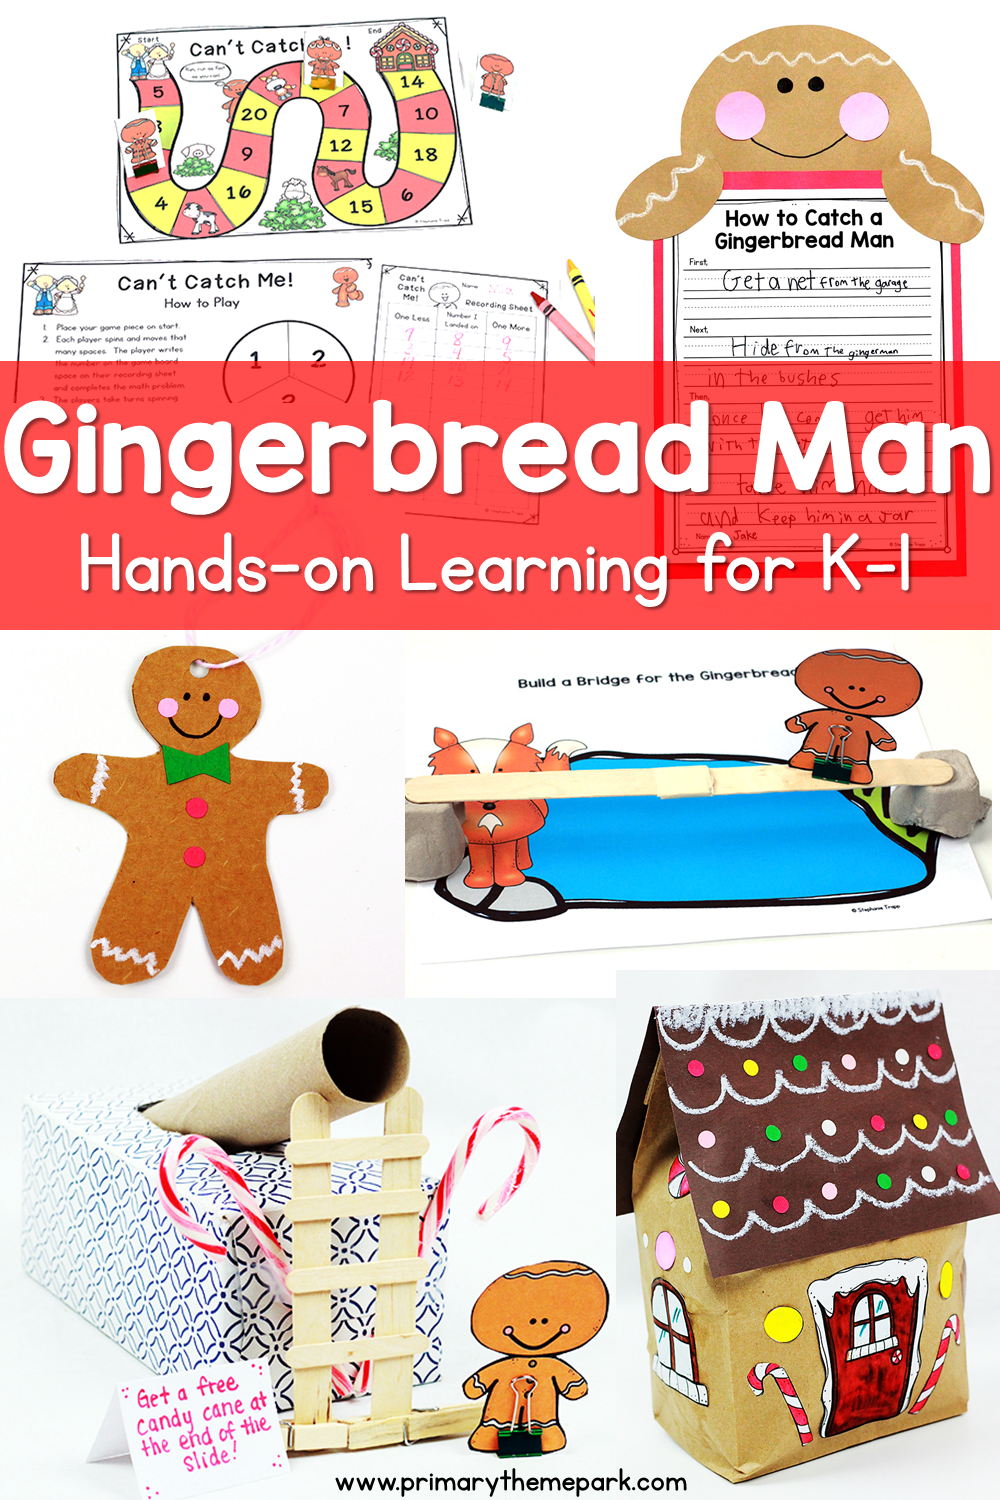 Gingerbread Man Unit Hands-On Learning for Kindergarten and First Grade